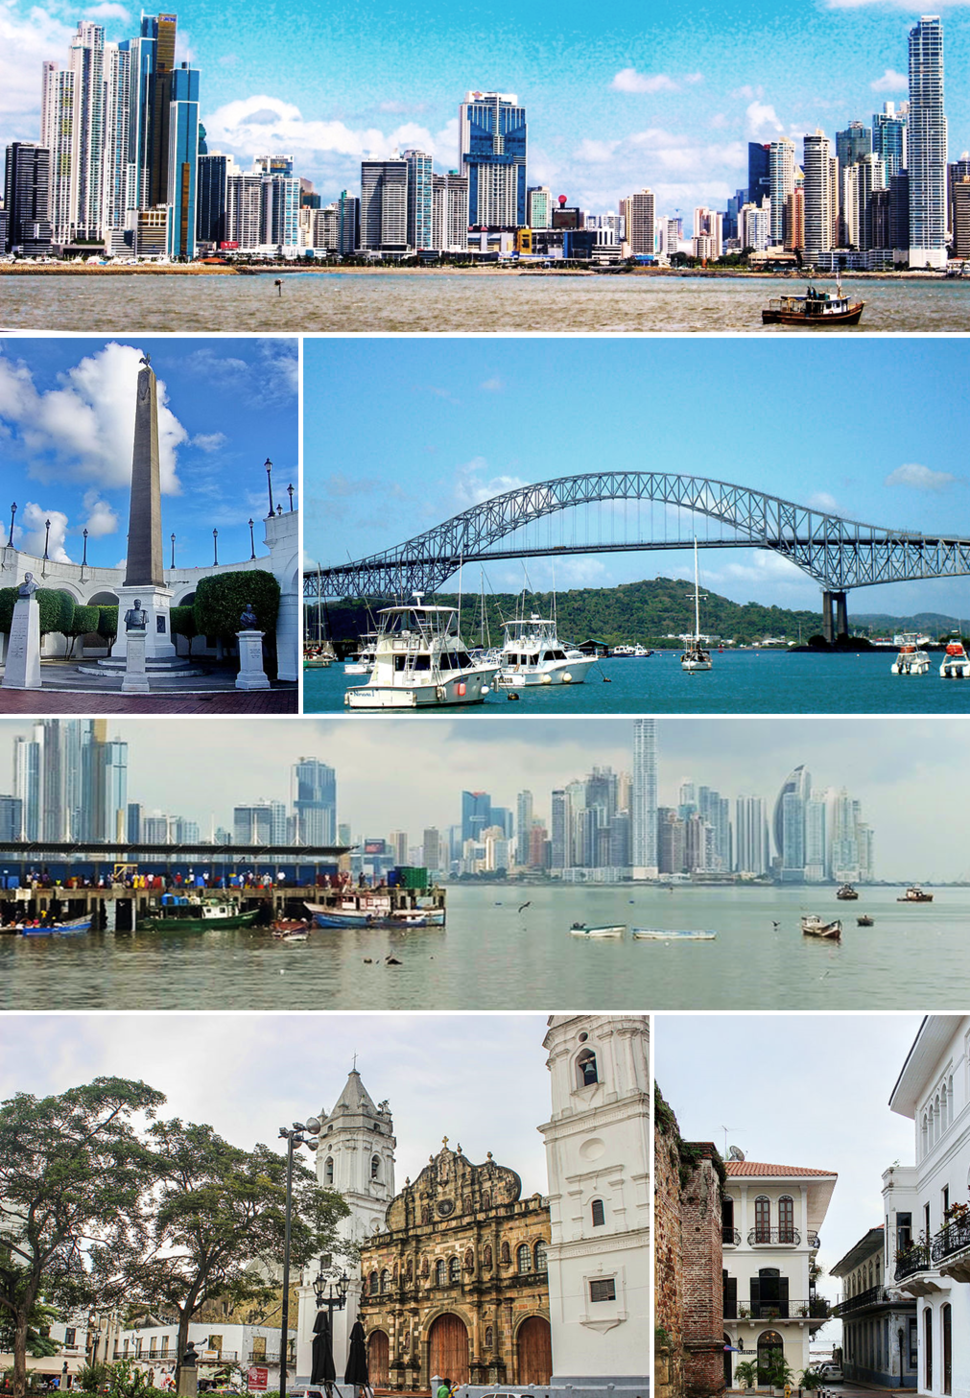 """Top to bottom, left to right: Panama Canal, Skyline, Bridge of the Americas, The bovedas, Casco Viejo of Panama (spanish for """"old quarter"""") and Metropolitan Cathedral of Panama."""